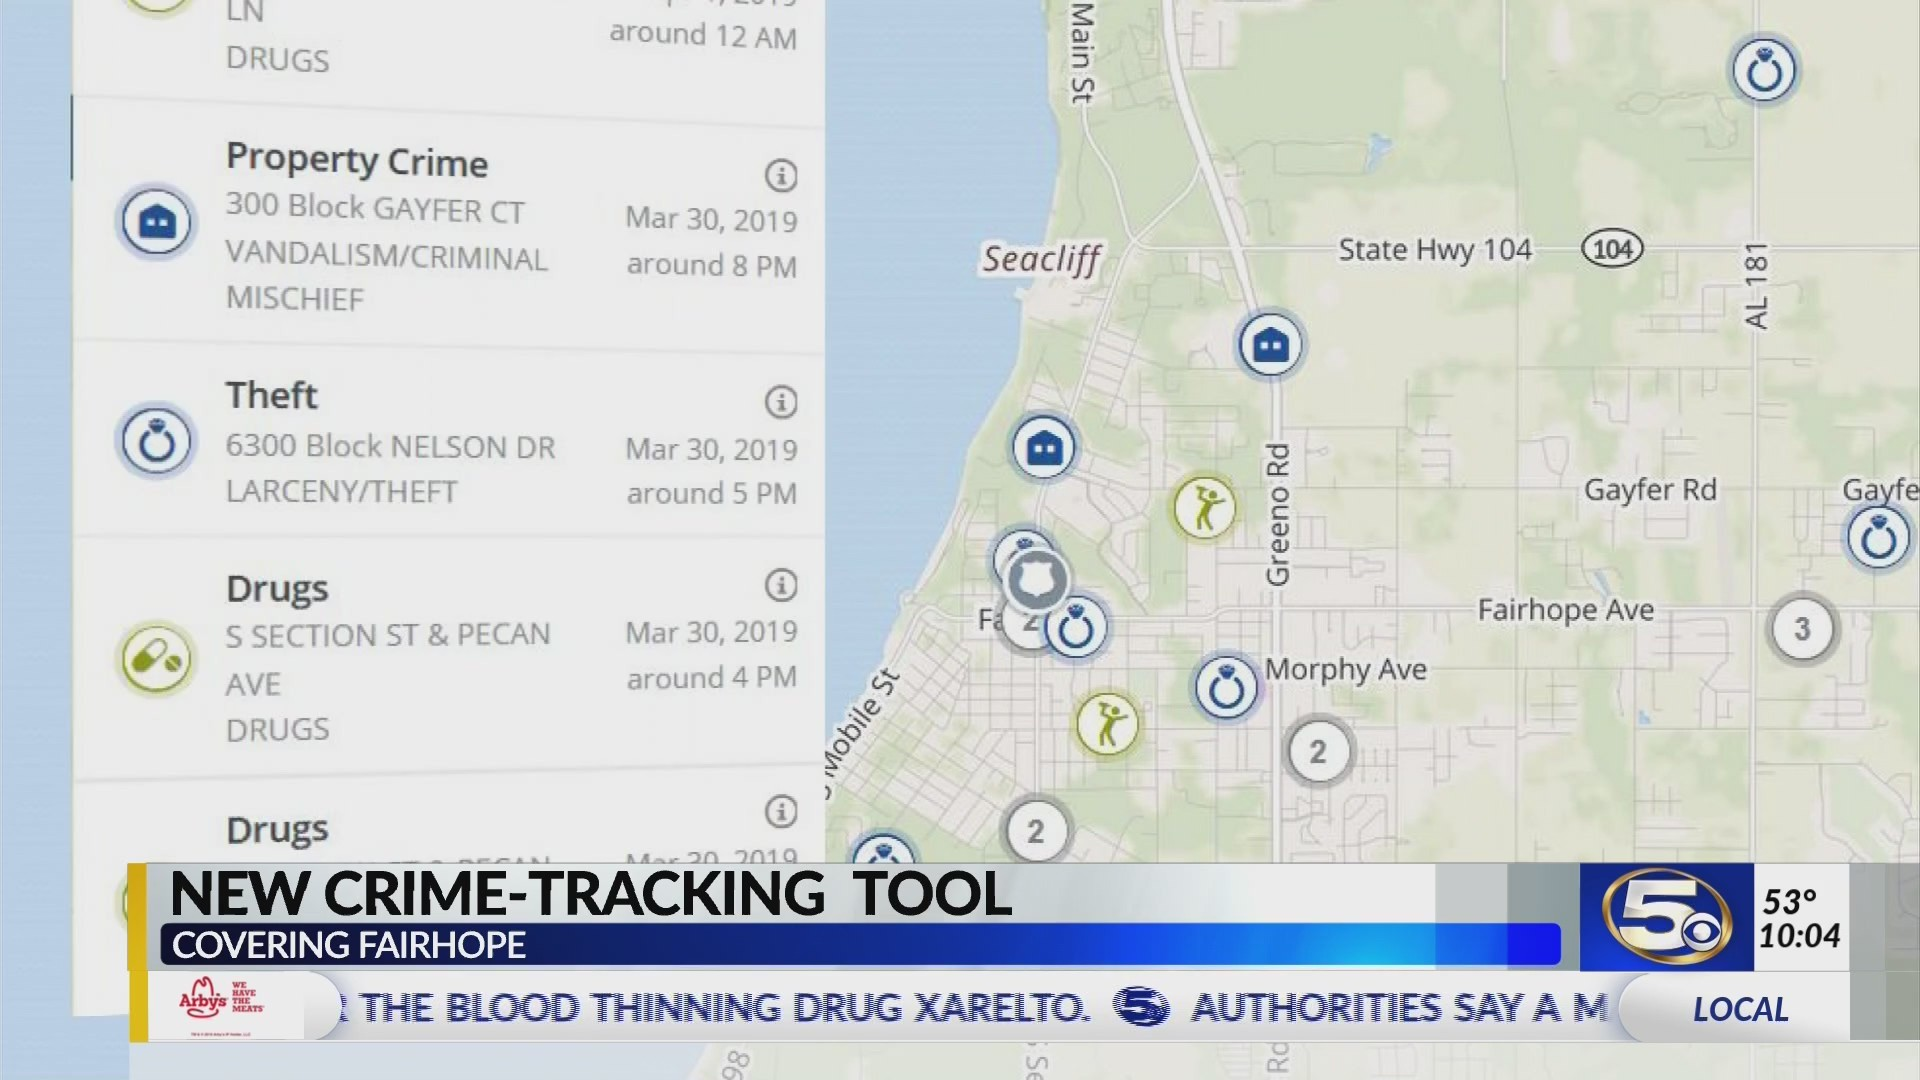 VIDEO: Fairhope becomes latest PD to join public crime database